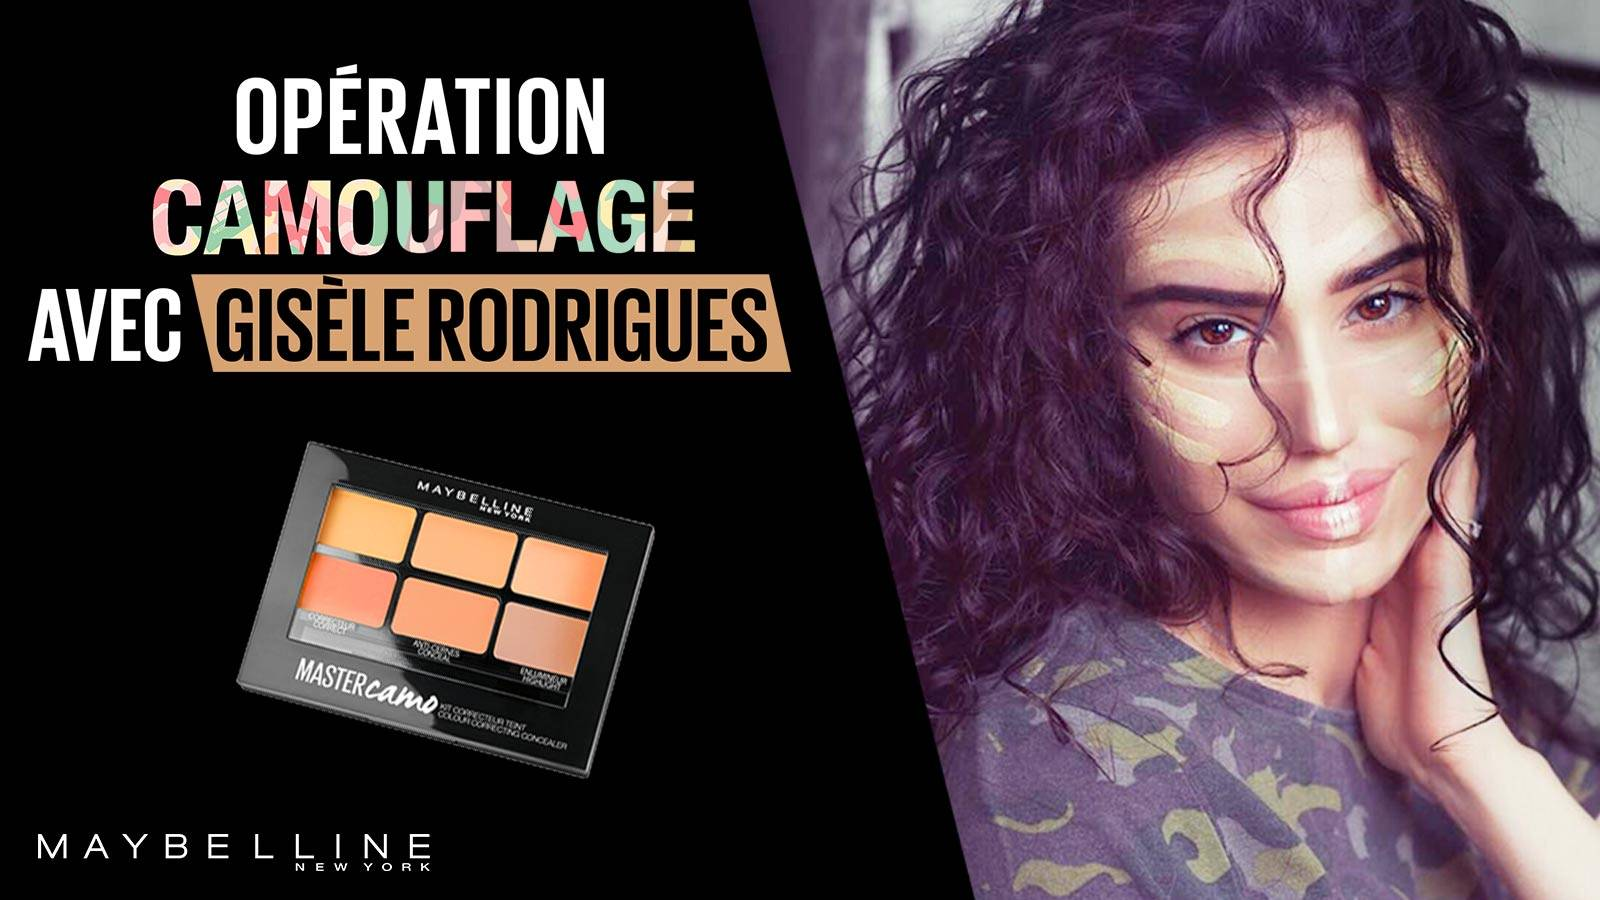 maybelline-master-camo-opération-camouflage-gisele-rodrigues-video-16x9(1)